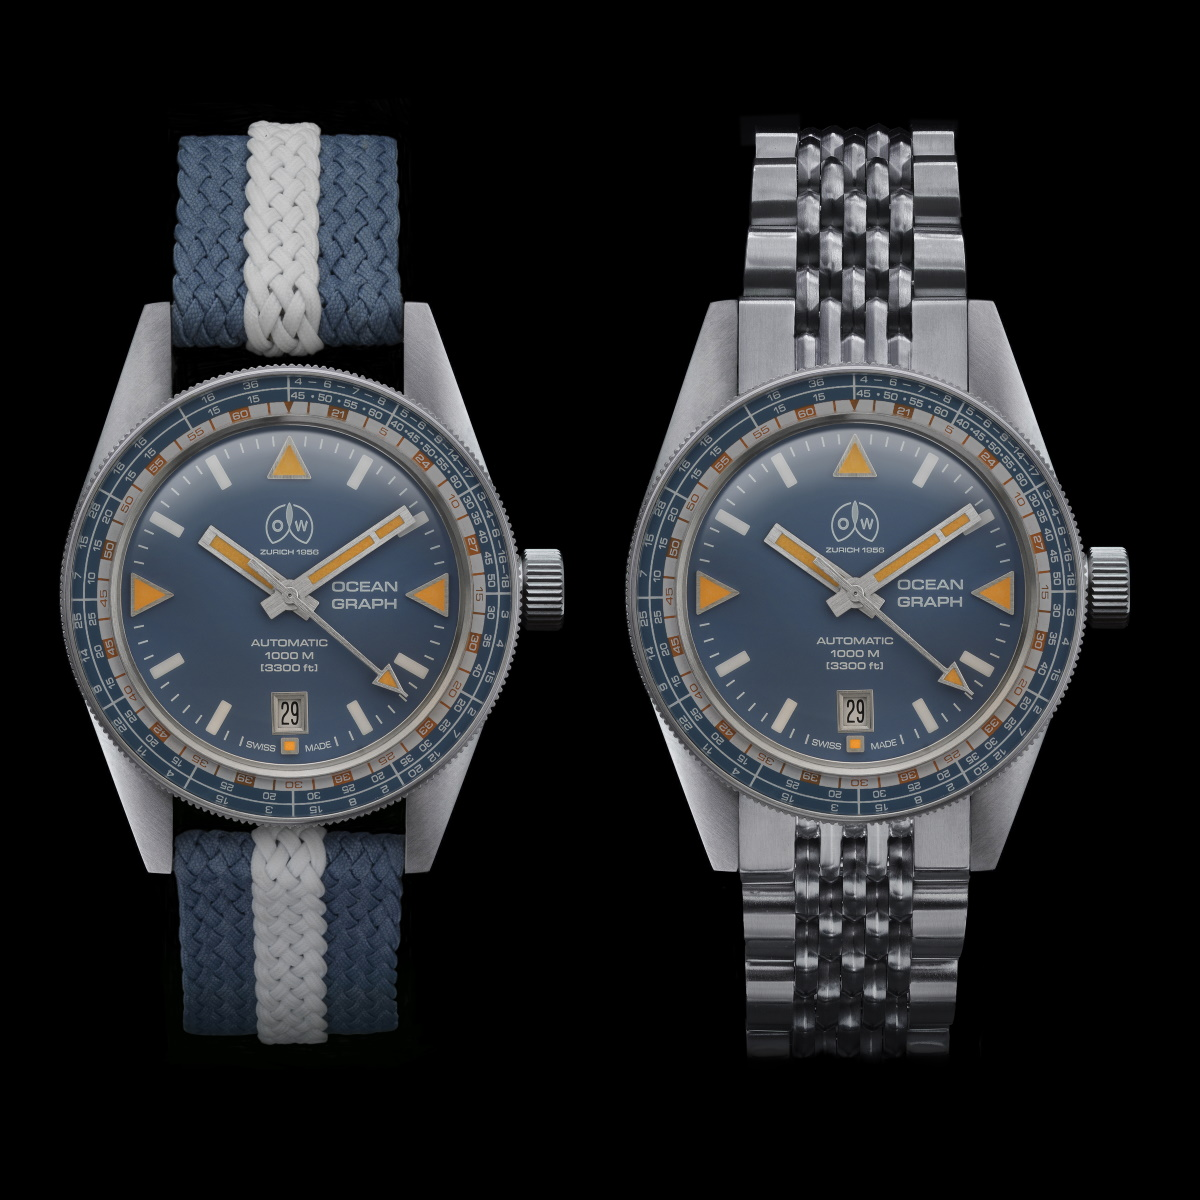 OW Ocean Graph Both Watches